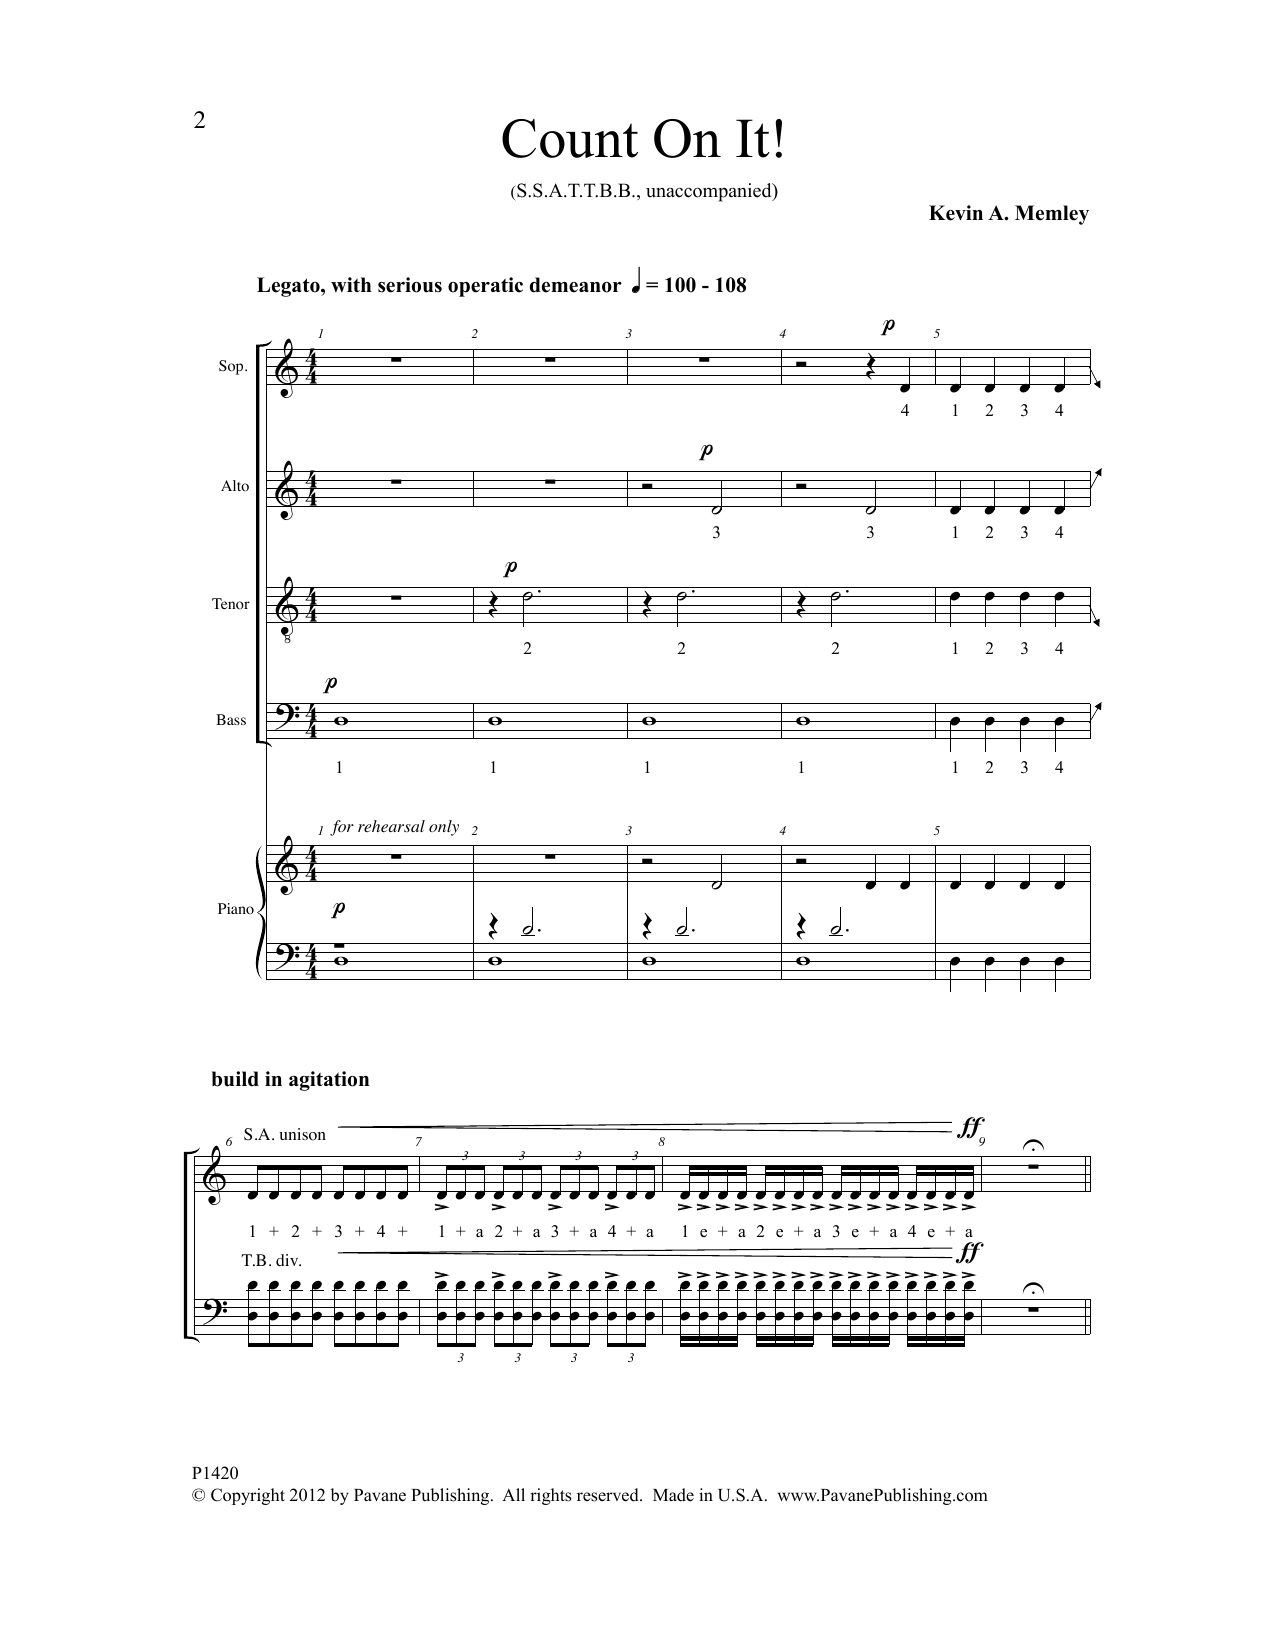 Count on It! Sheet Music